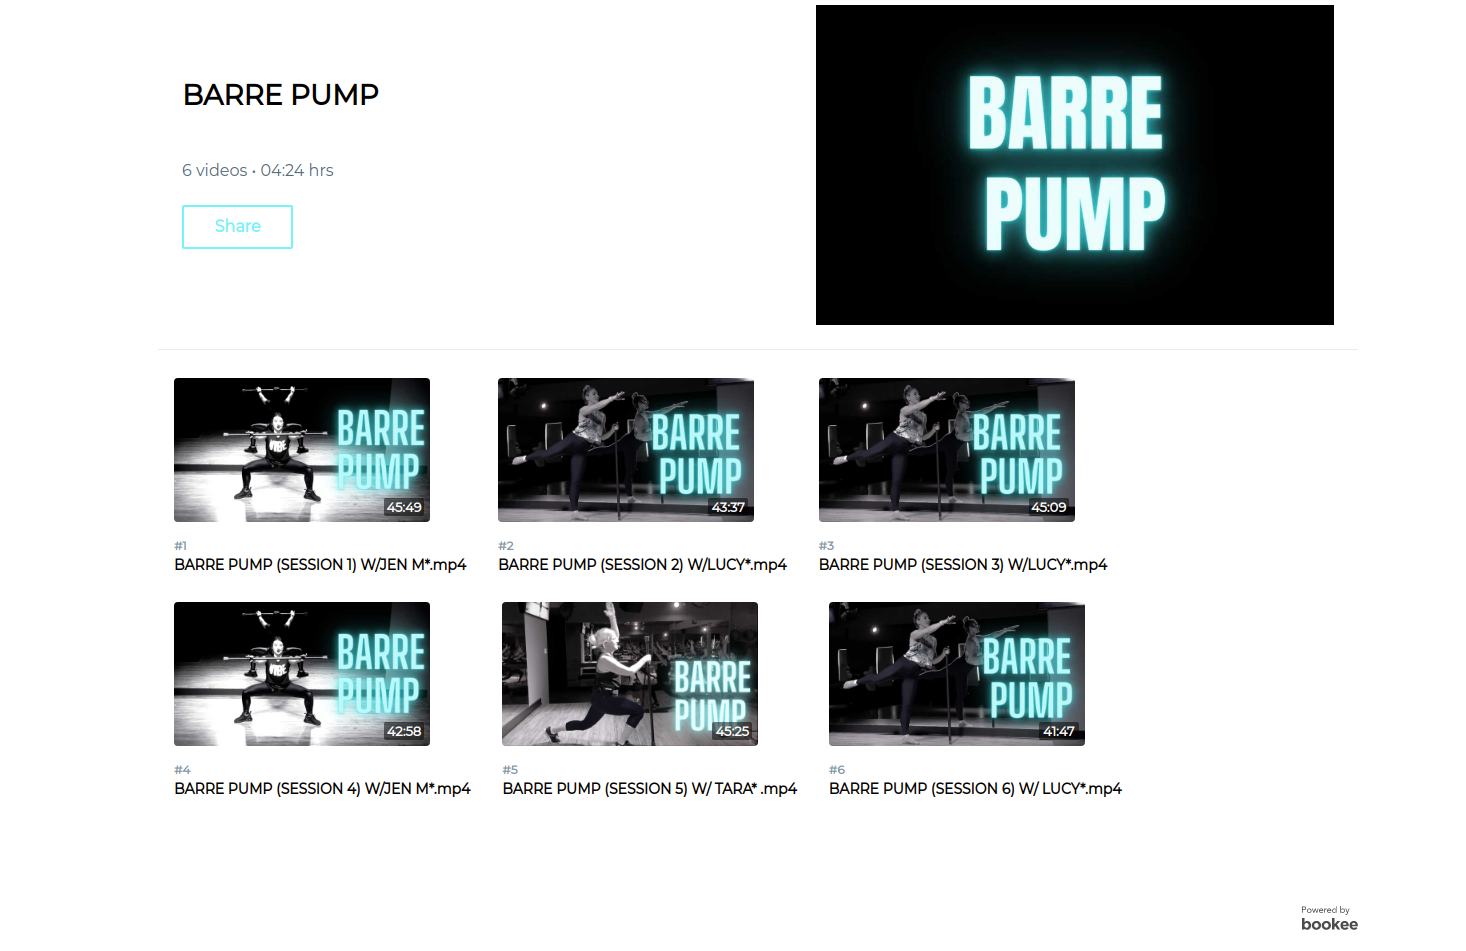 Vibe Vault Fit's Barre video-on-demand playlist with six different barre pump sessions